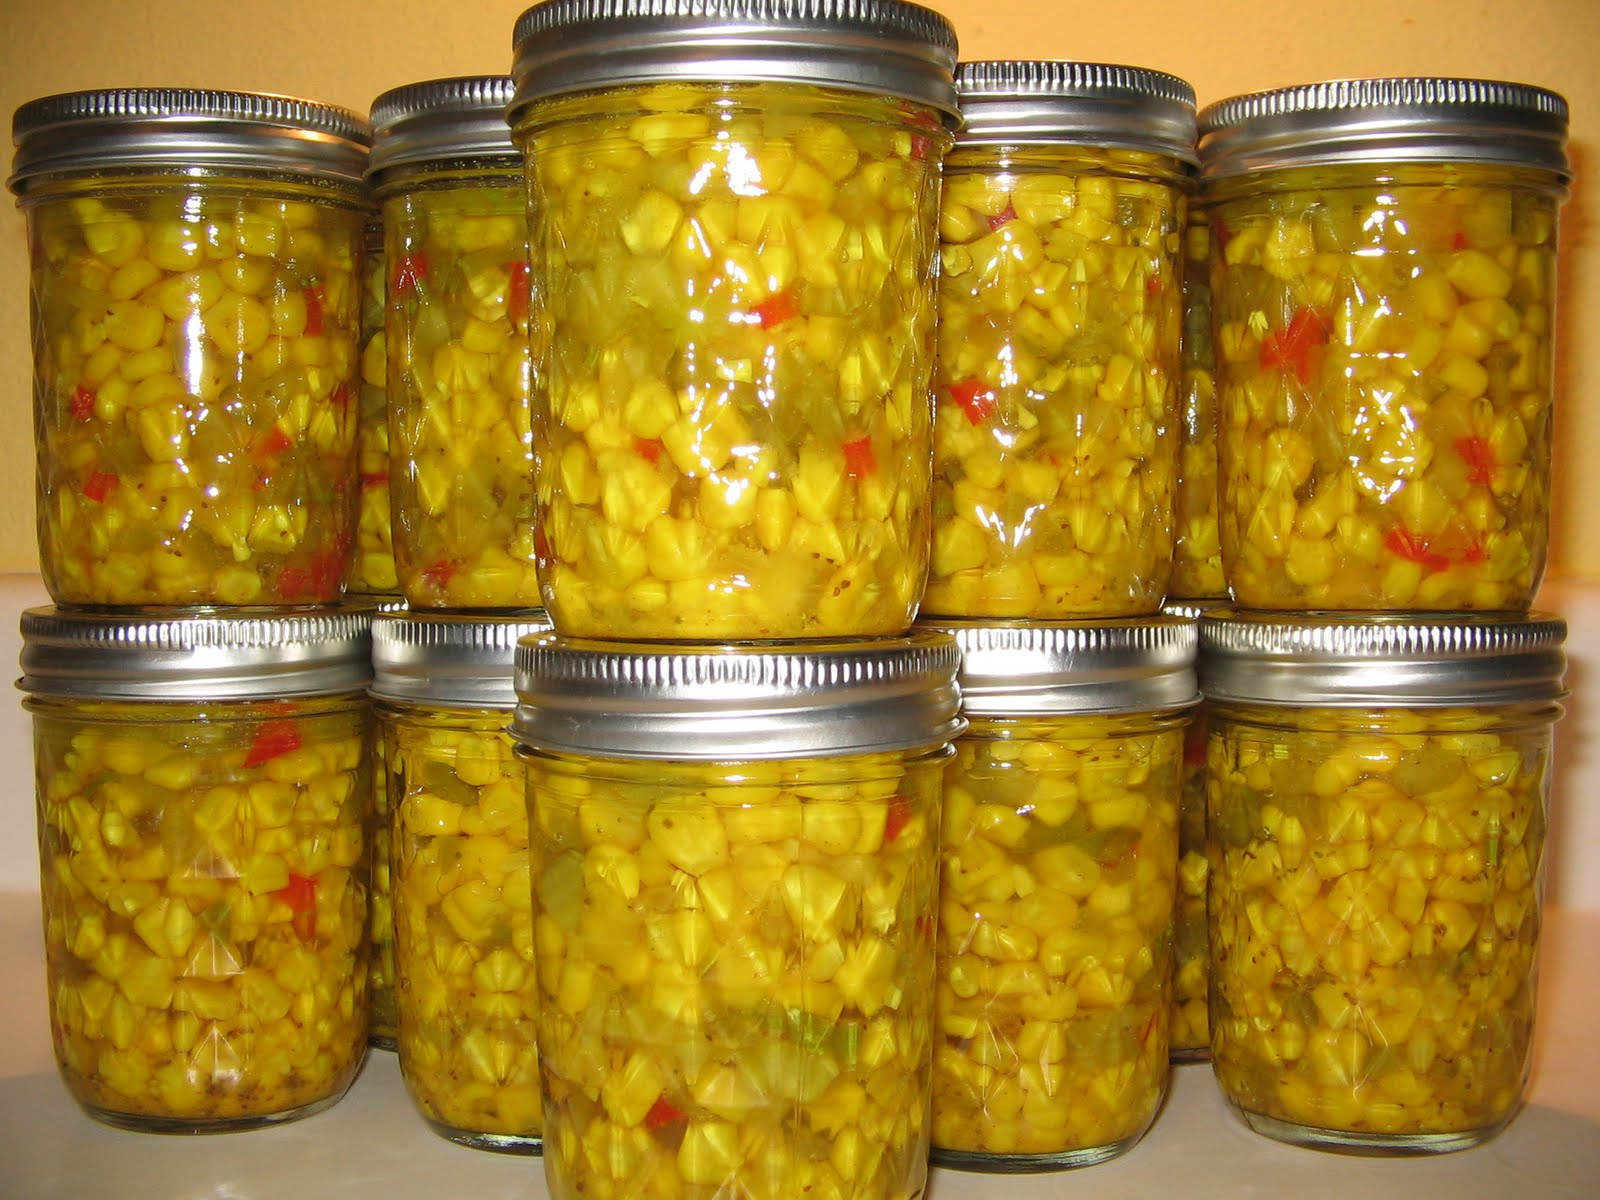 Miz Helen's Country Cottage: Christmas Canning in September